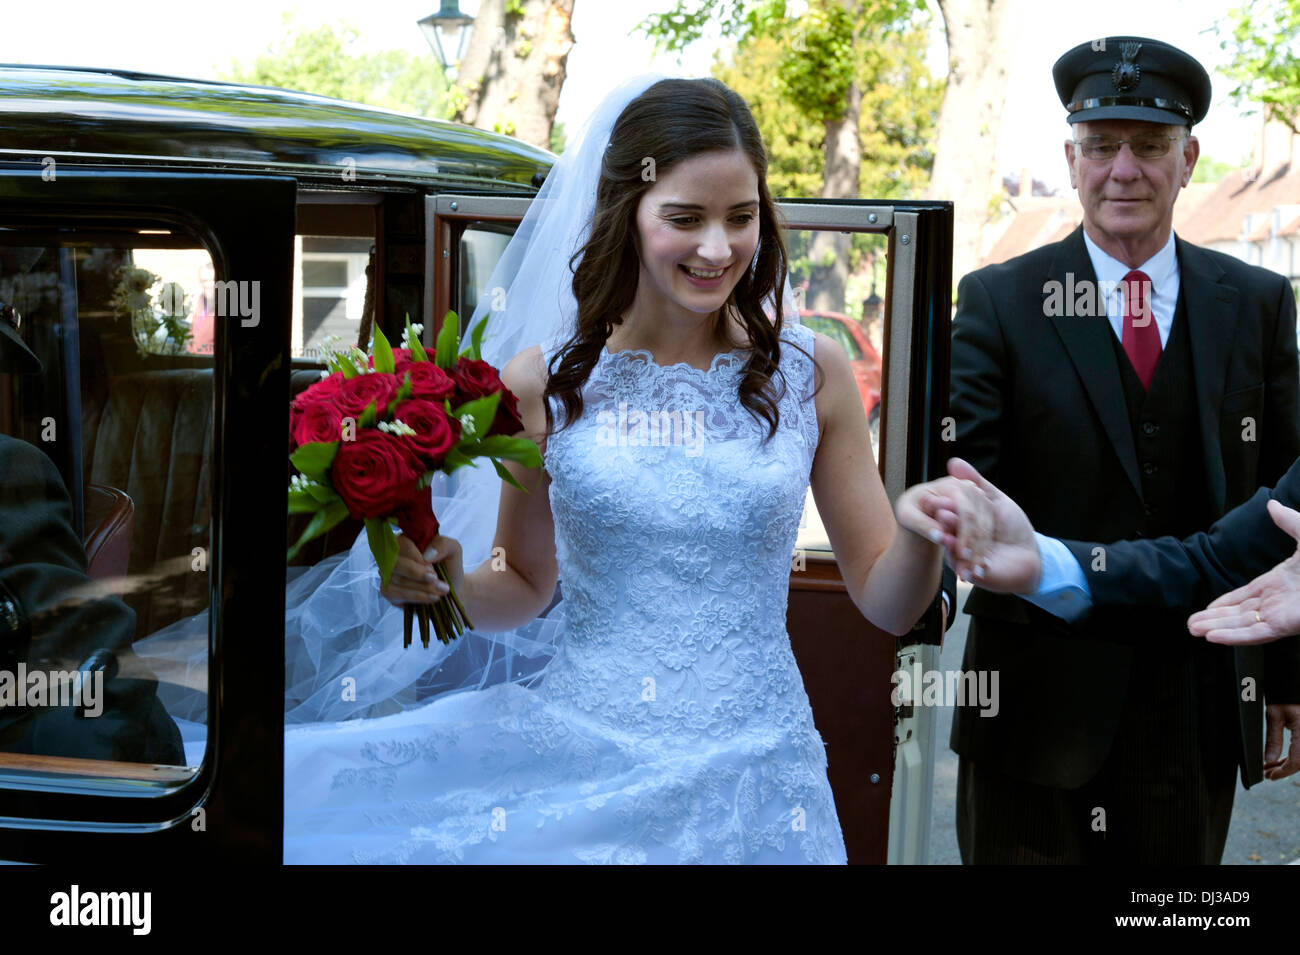 Bride Arriving In Traditional White Wedding Dress Carrying Bouquet